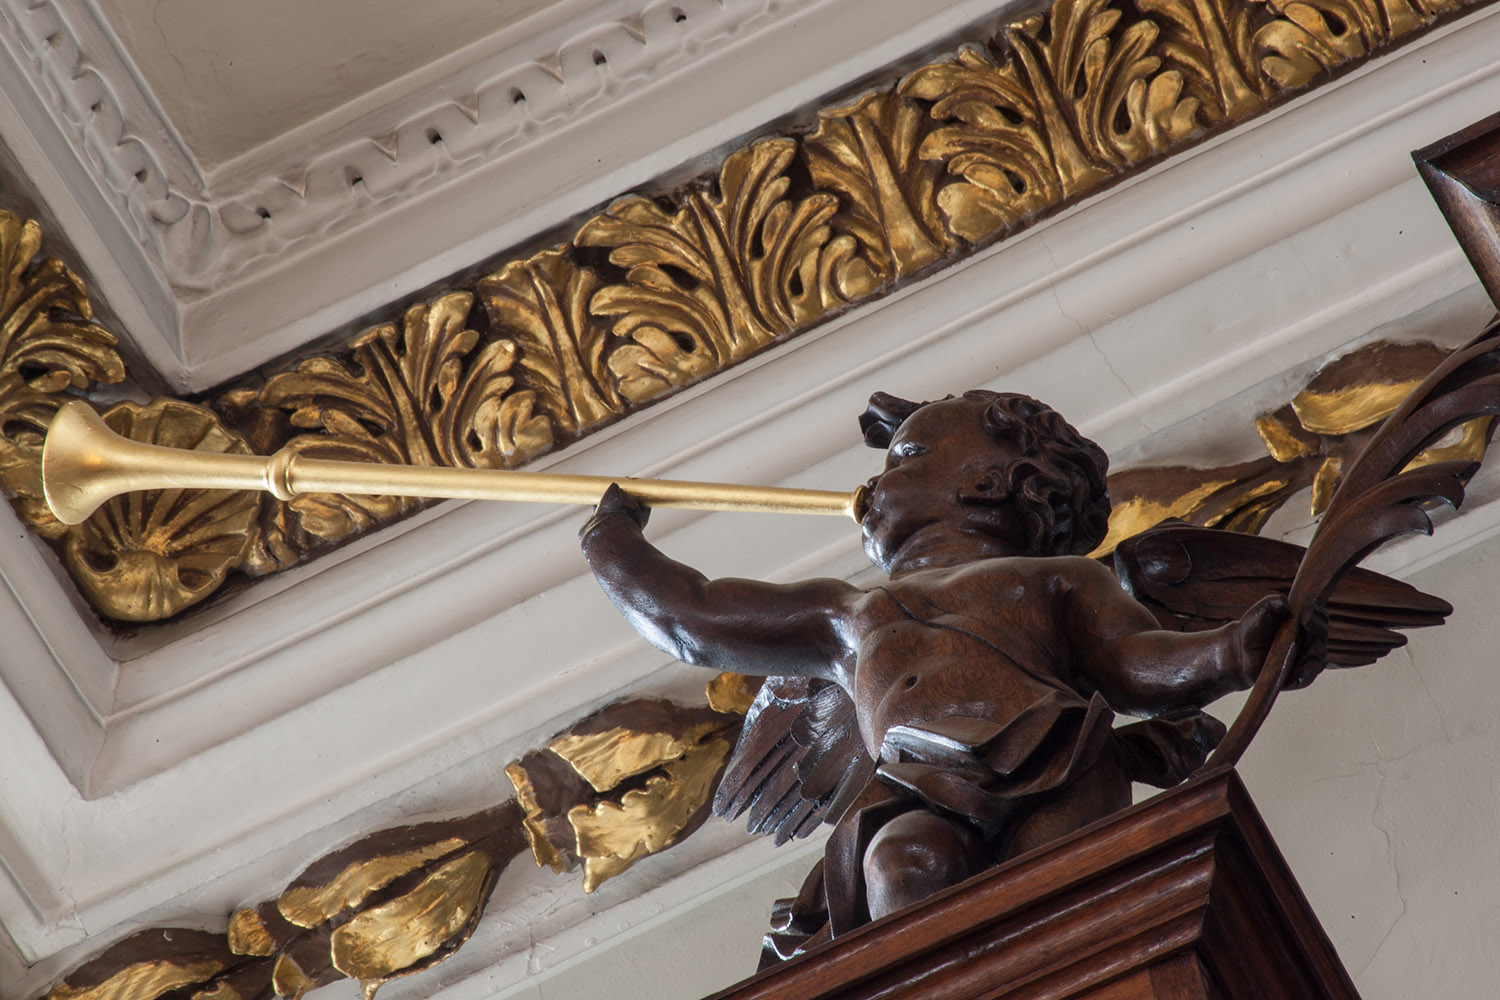 A wooden carved cherub blowing a gold trumpet on top of the organ